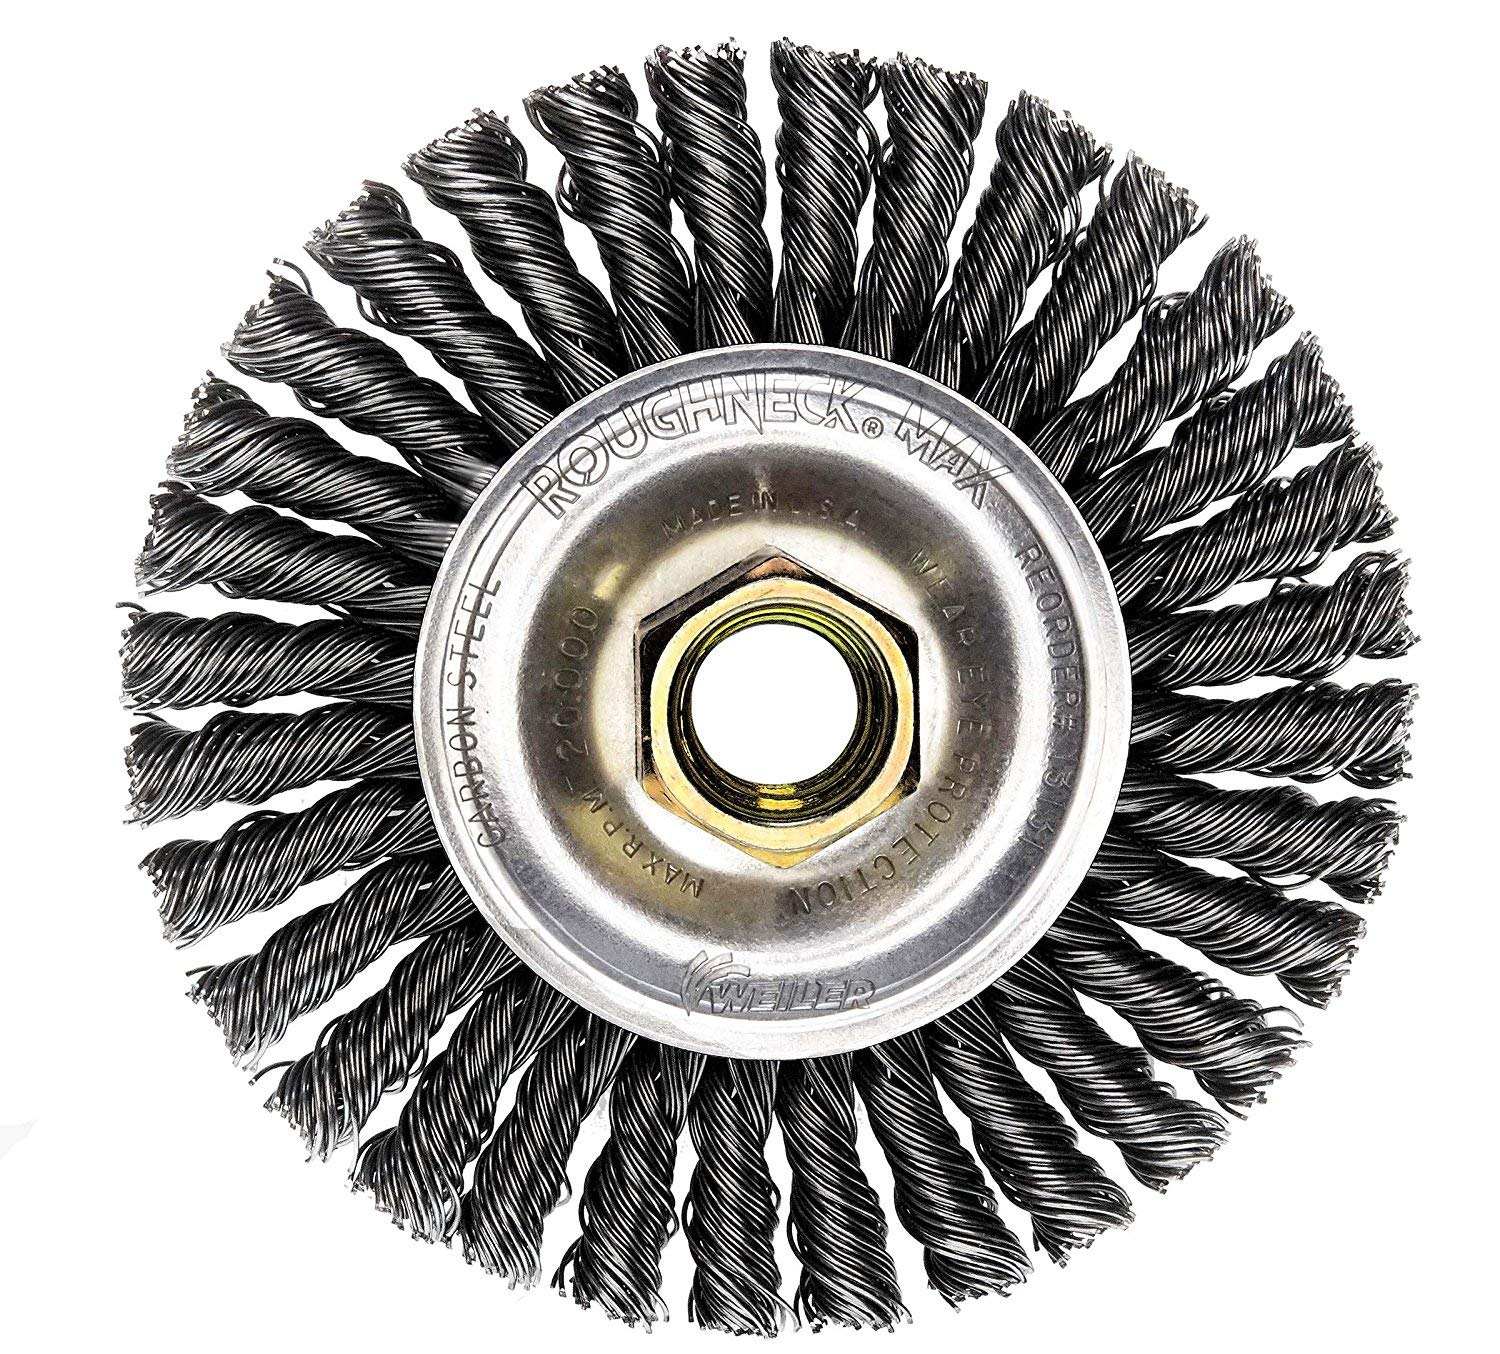 Weiler 13131 ROUGHNECK MAX 4'' Stringer Bead Wire Wheel, .020'' Steel Fill, 5/8''-11 UNC Nut, Made in USA, Pack of 5 by Weiler (Image #9)